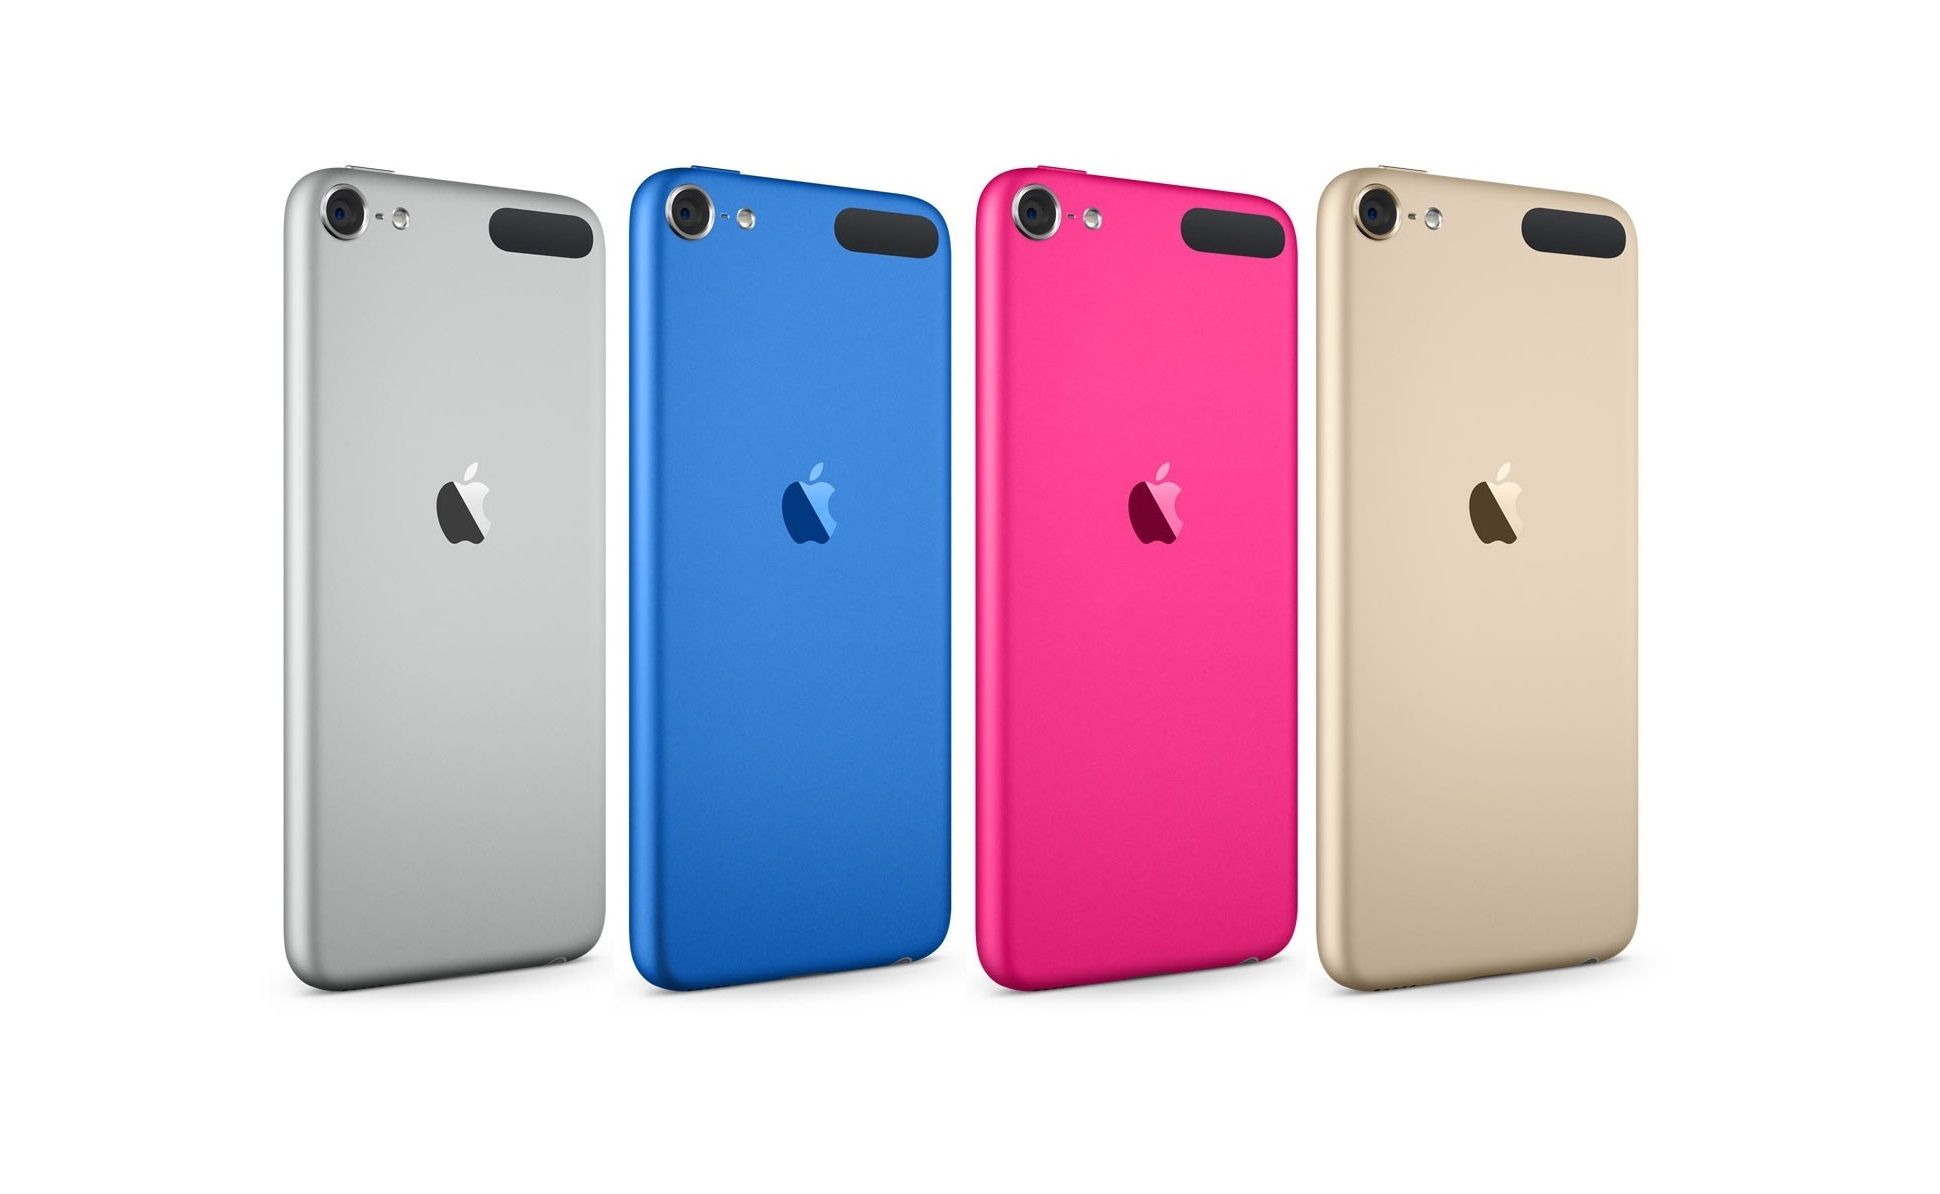 iPhone 6c Preview: The Next Affordable iPhone...